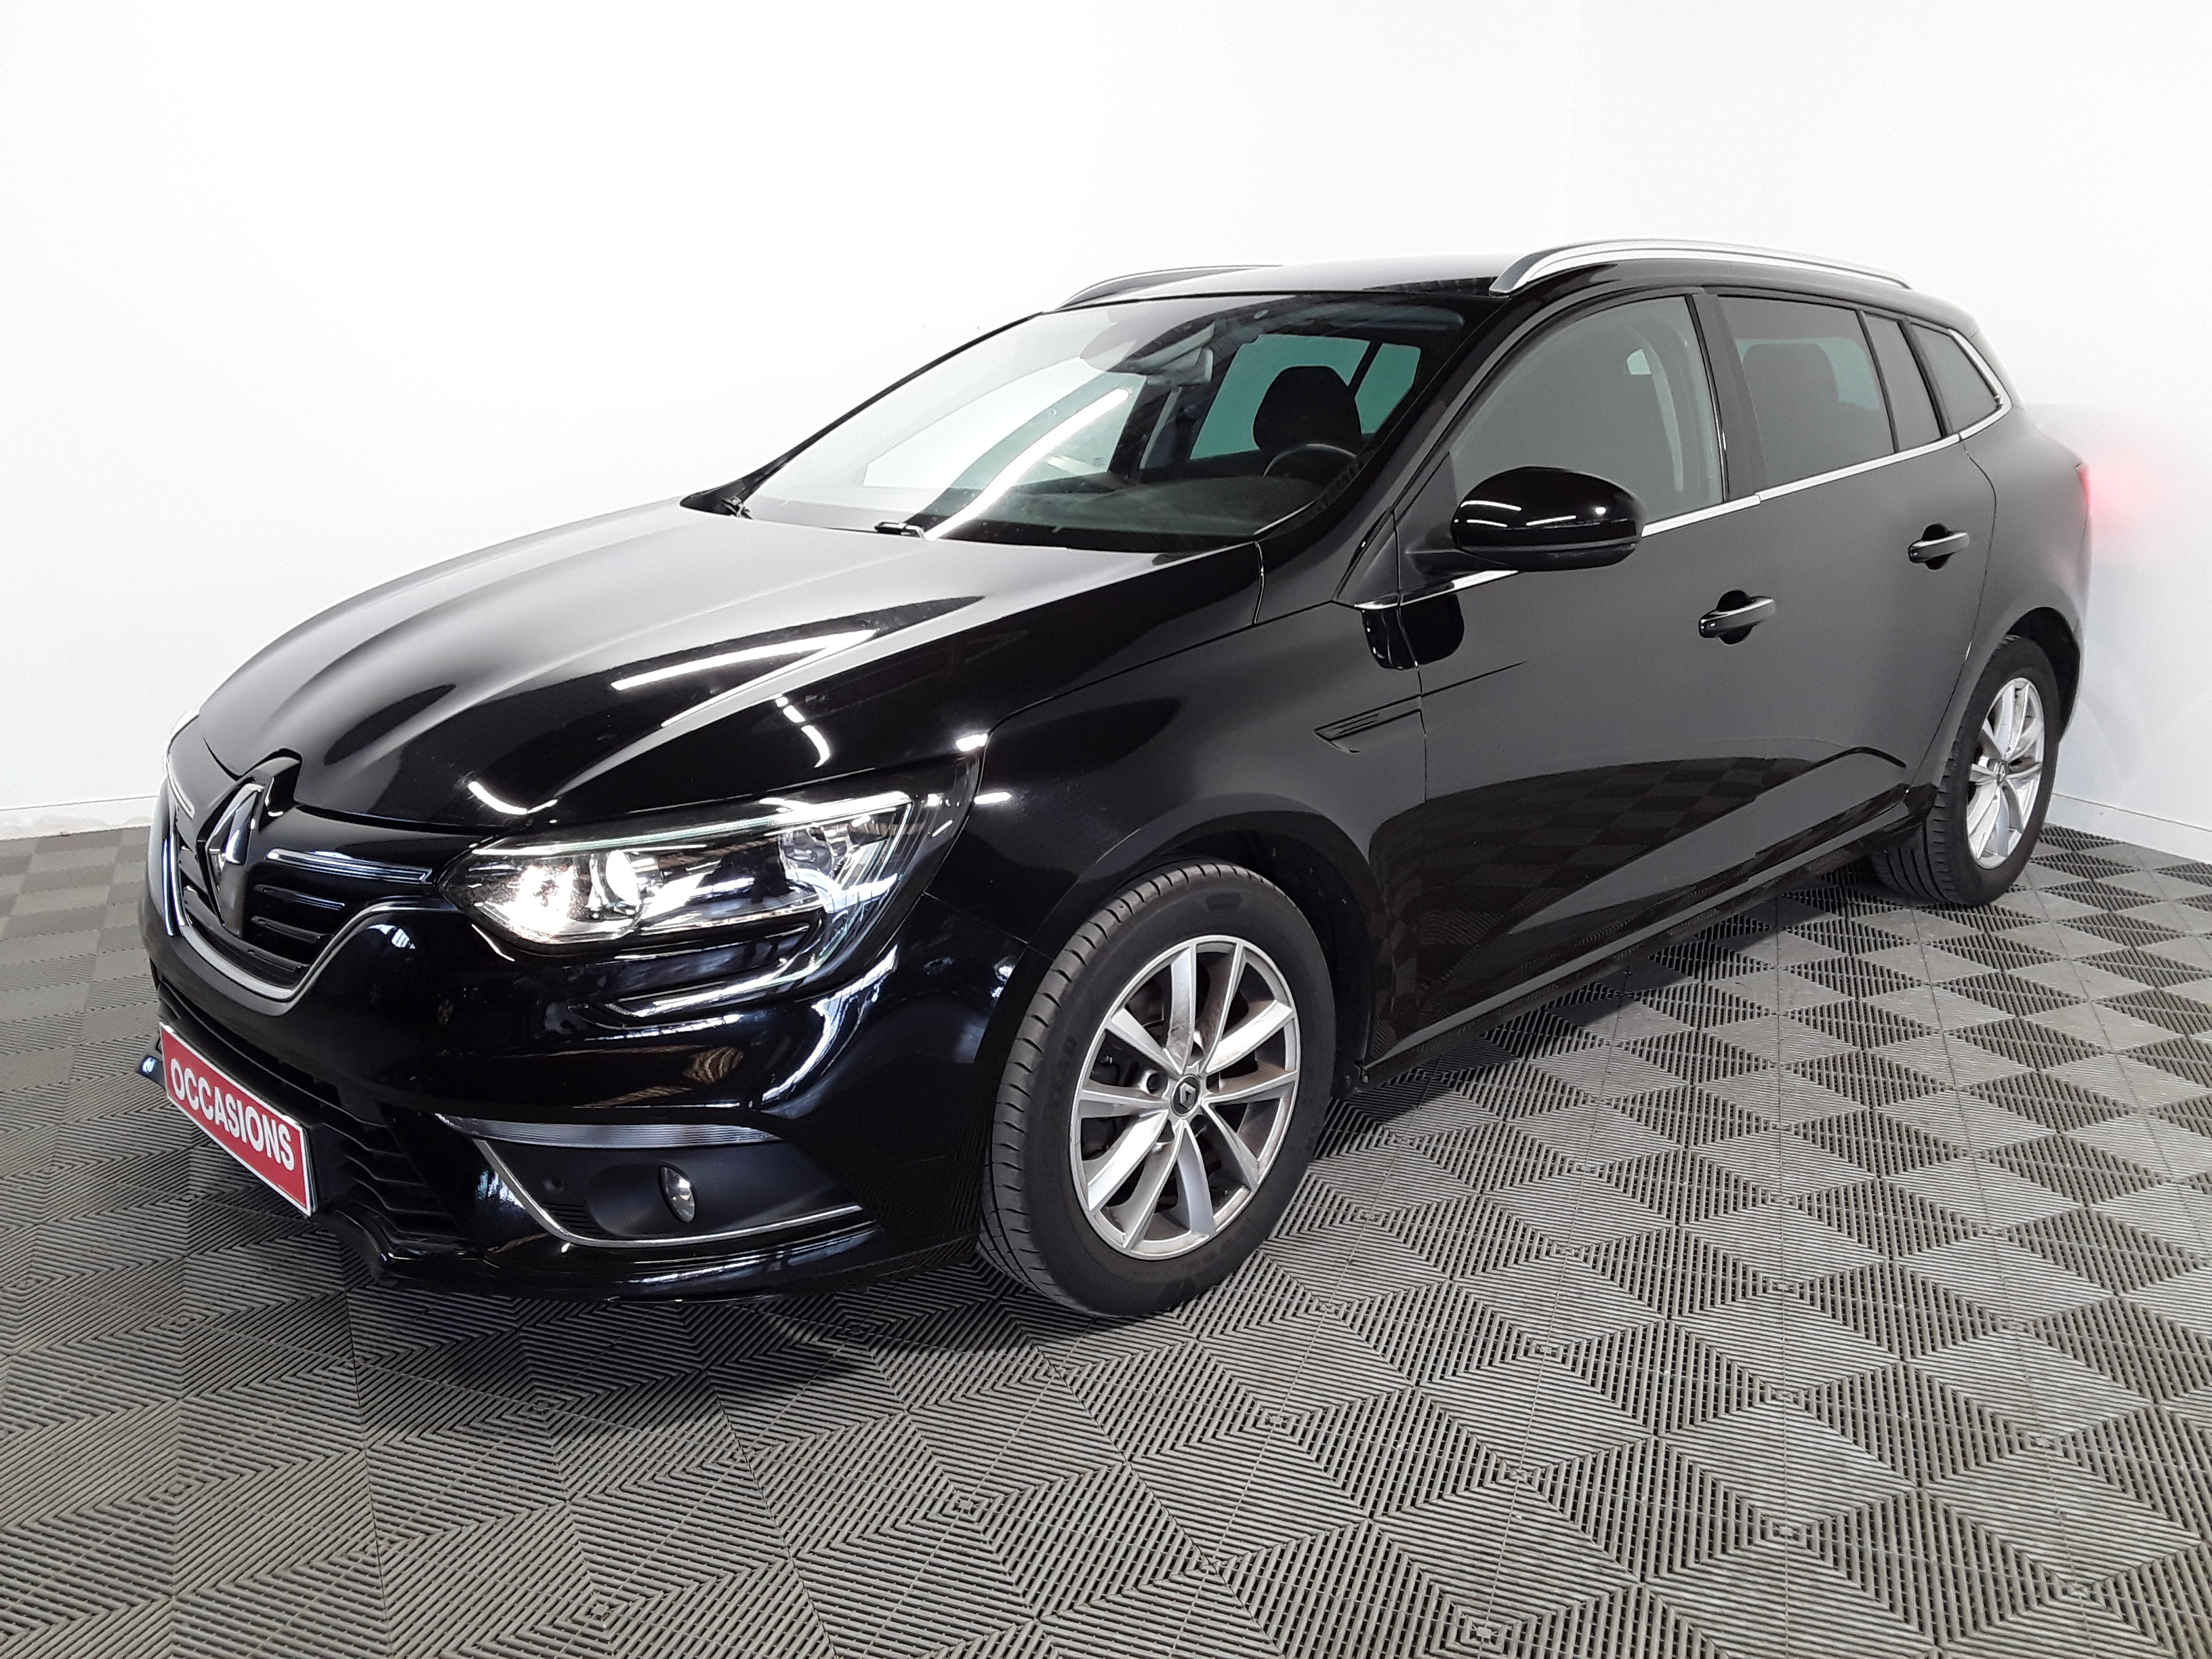 RENAULT MEGANE IV ESTATE BUSINESS dCi 110 Energy Business EDC d'occasion